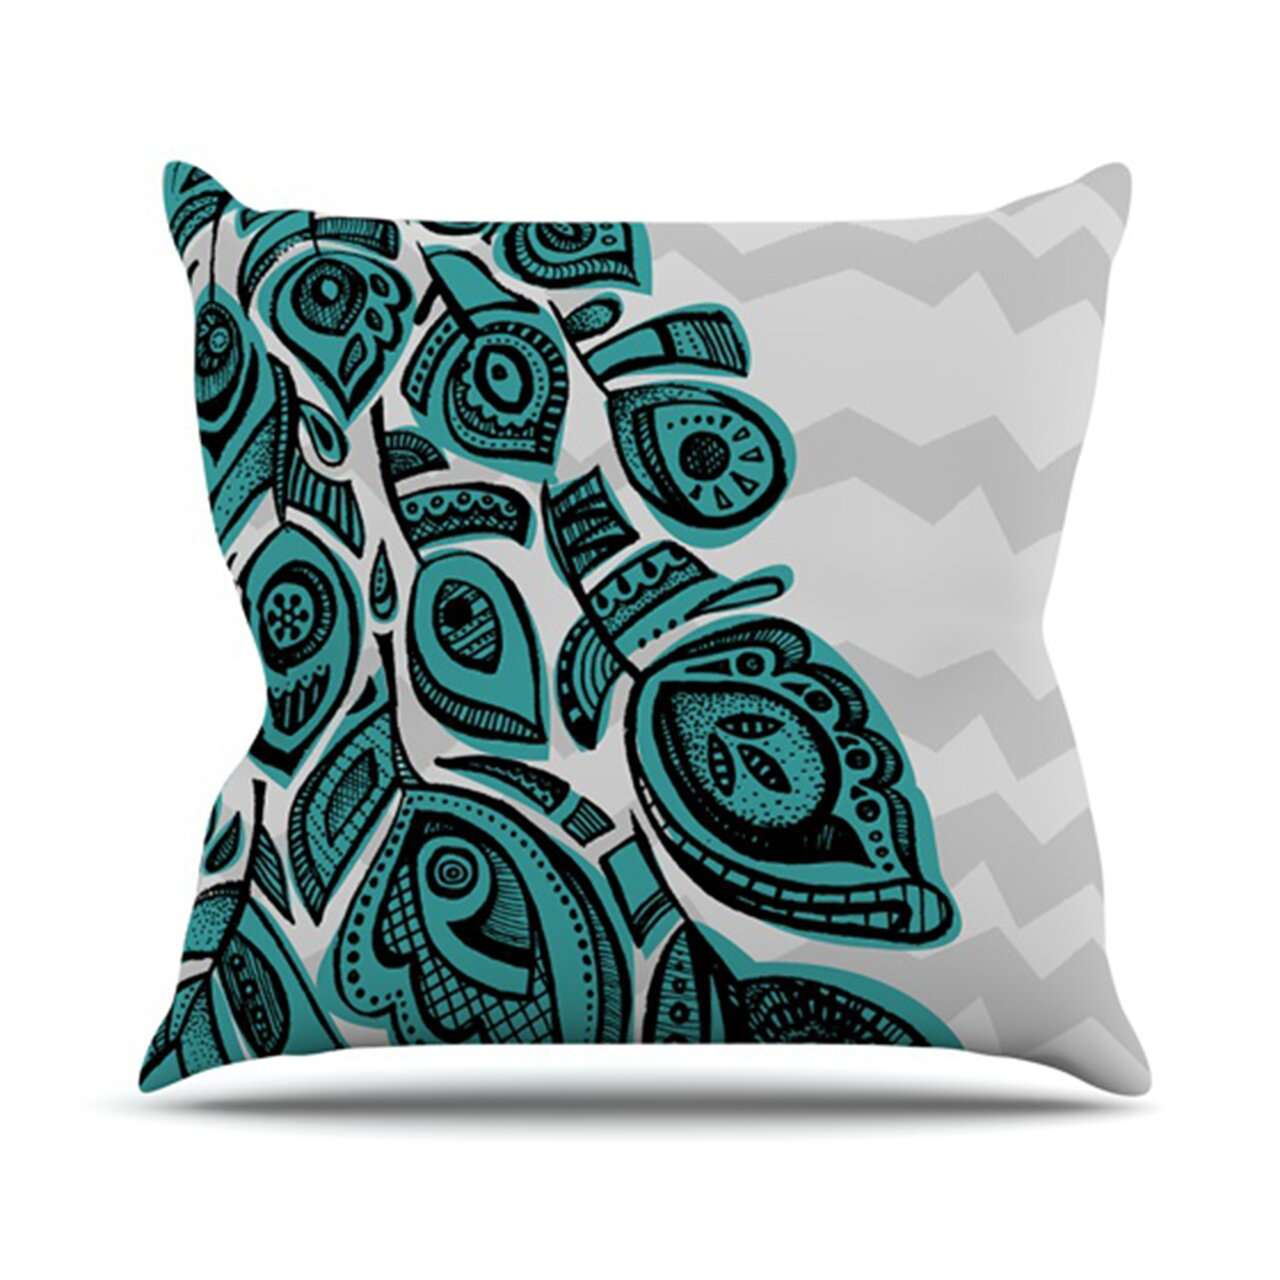 KESS InHouse Peacock Throw Pillow & Reviews Wayfair